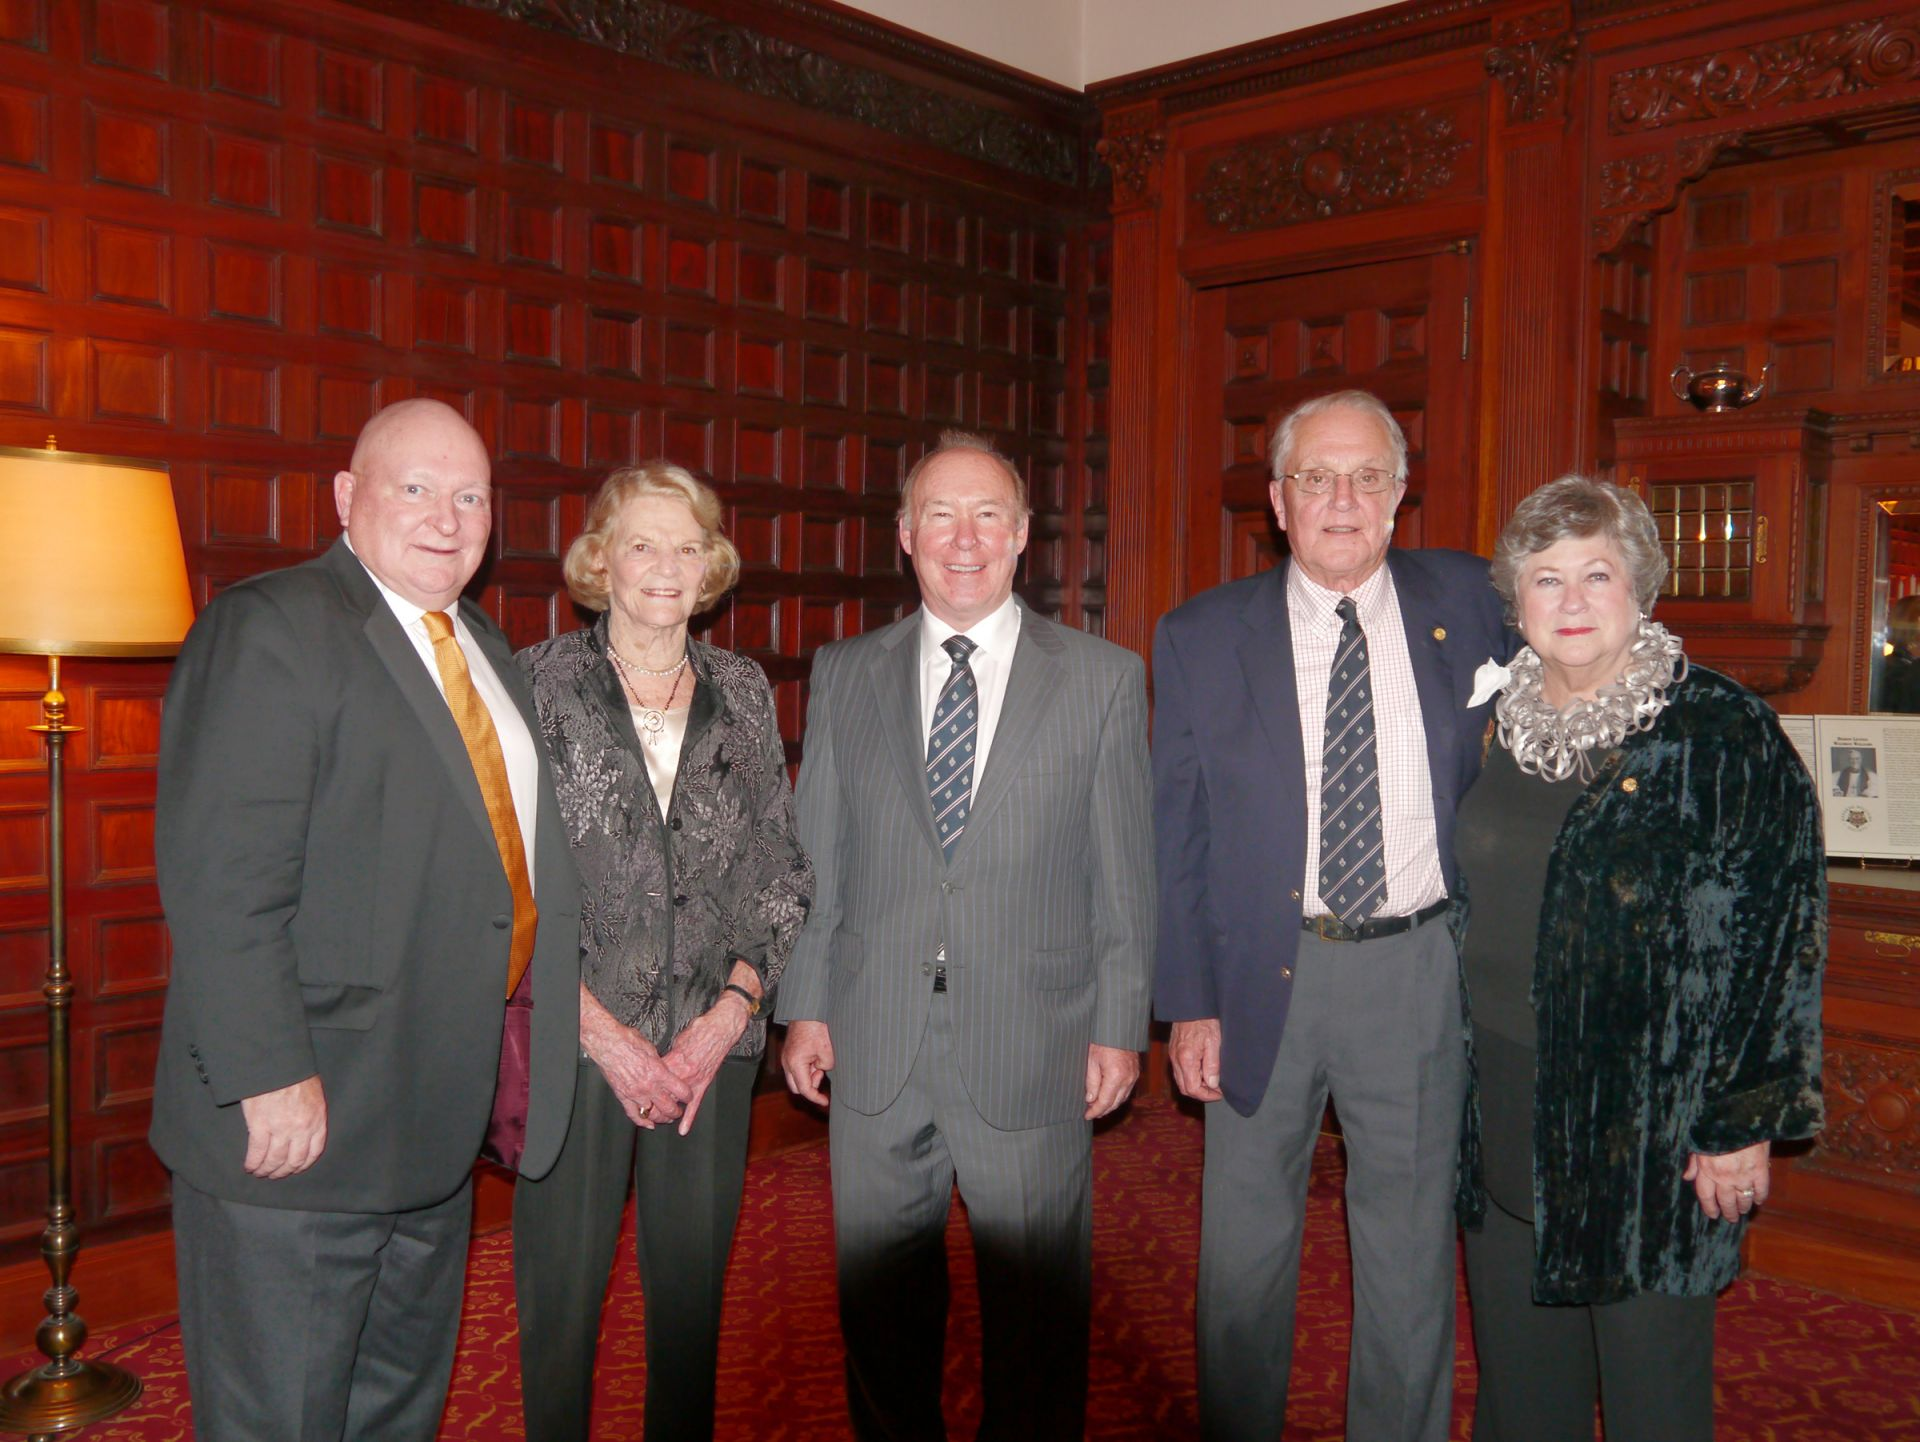 C. Scott Abbott, Jocelyn Shaw, Rick Howson, Bradley Mitchell and Patterson Webster